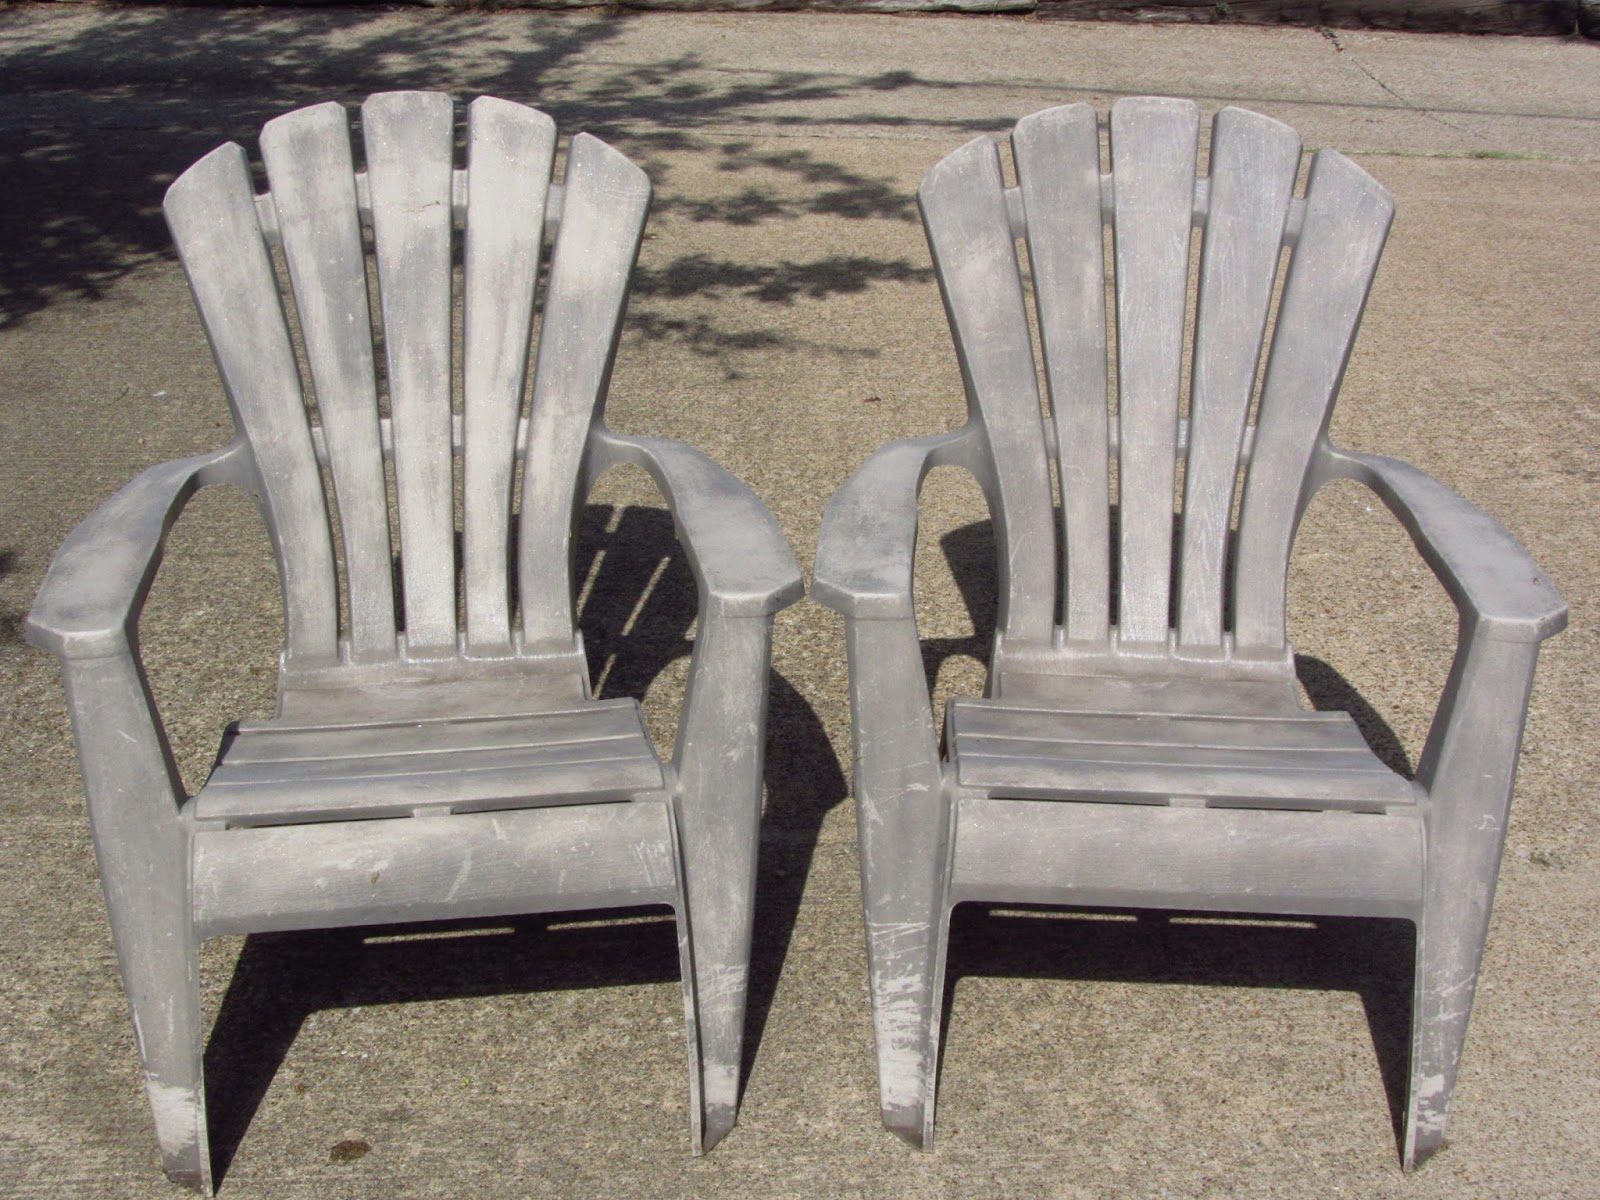 how to paint plastic chairs waiting room cheap so wonderfully complex painting outdoor